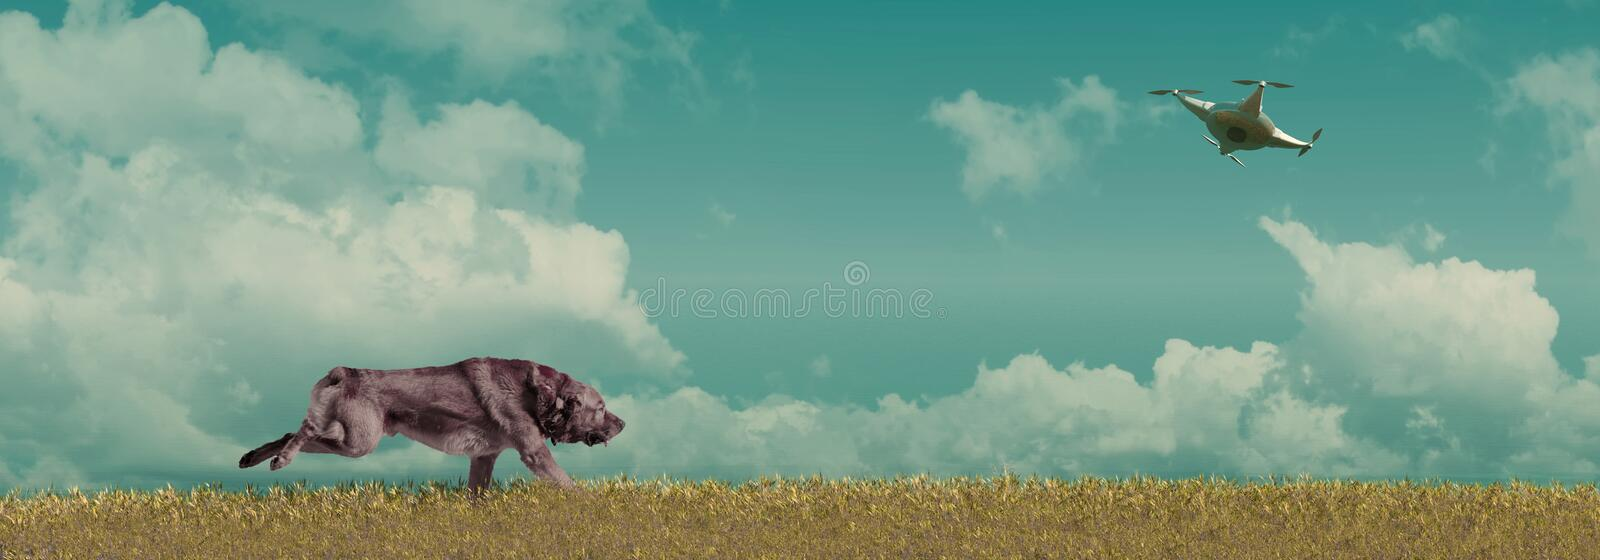 Pet animals, dogs. 3d illustration of pet animals, brown dog playing with dron stock illustration